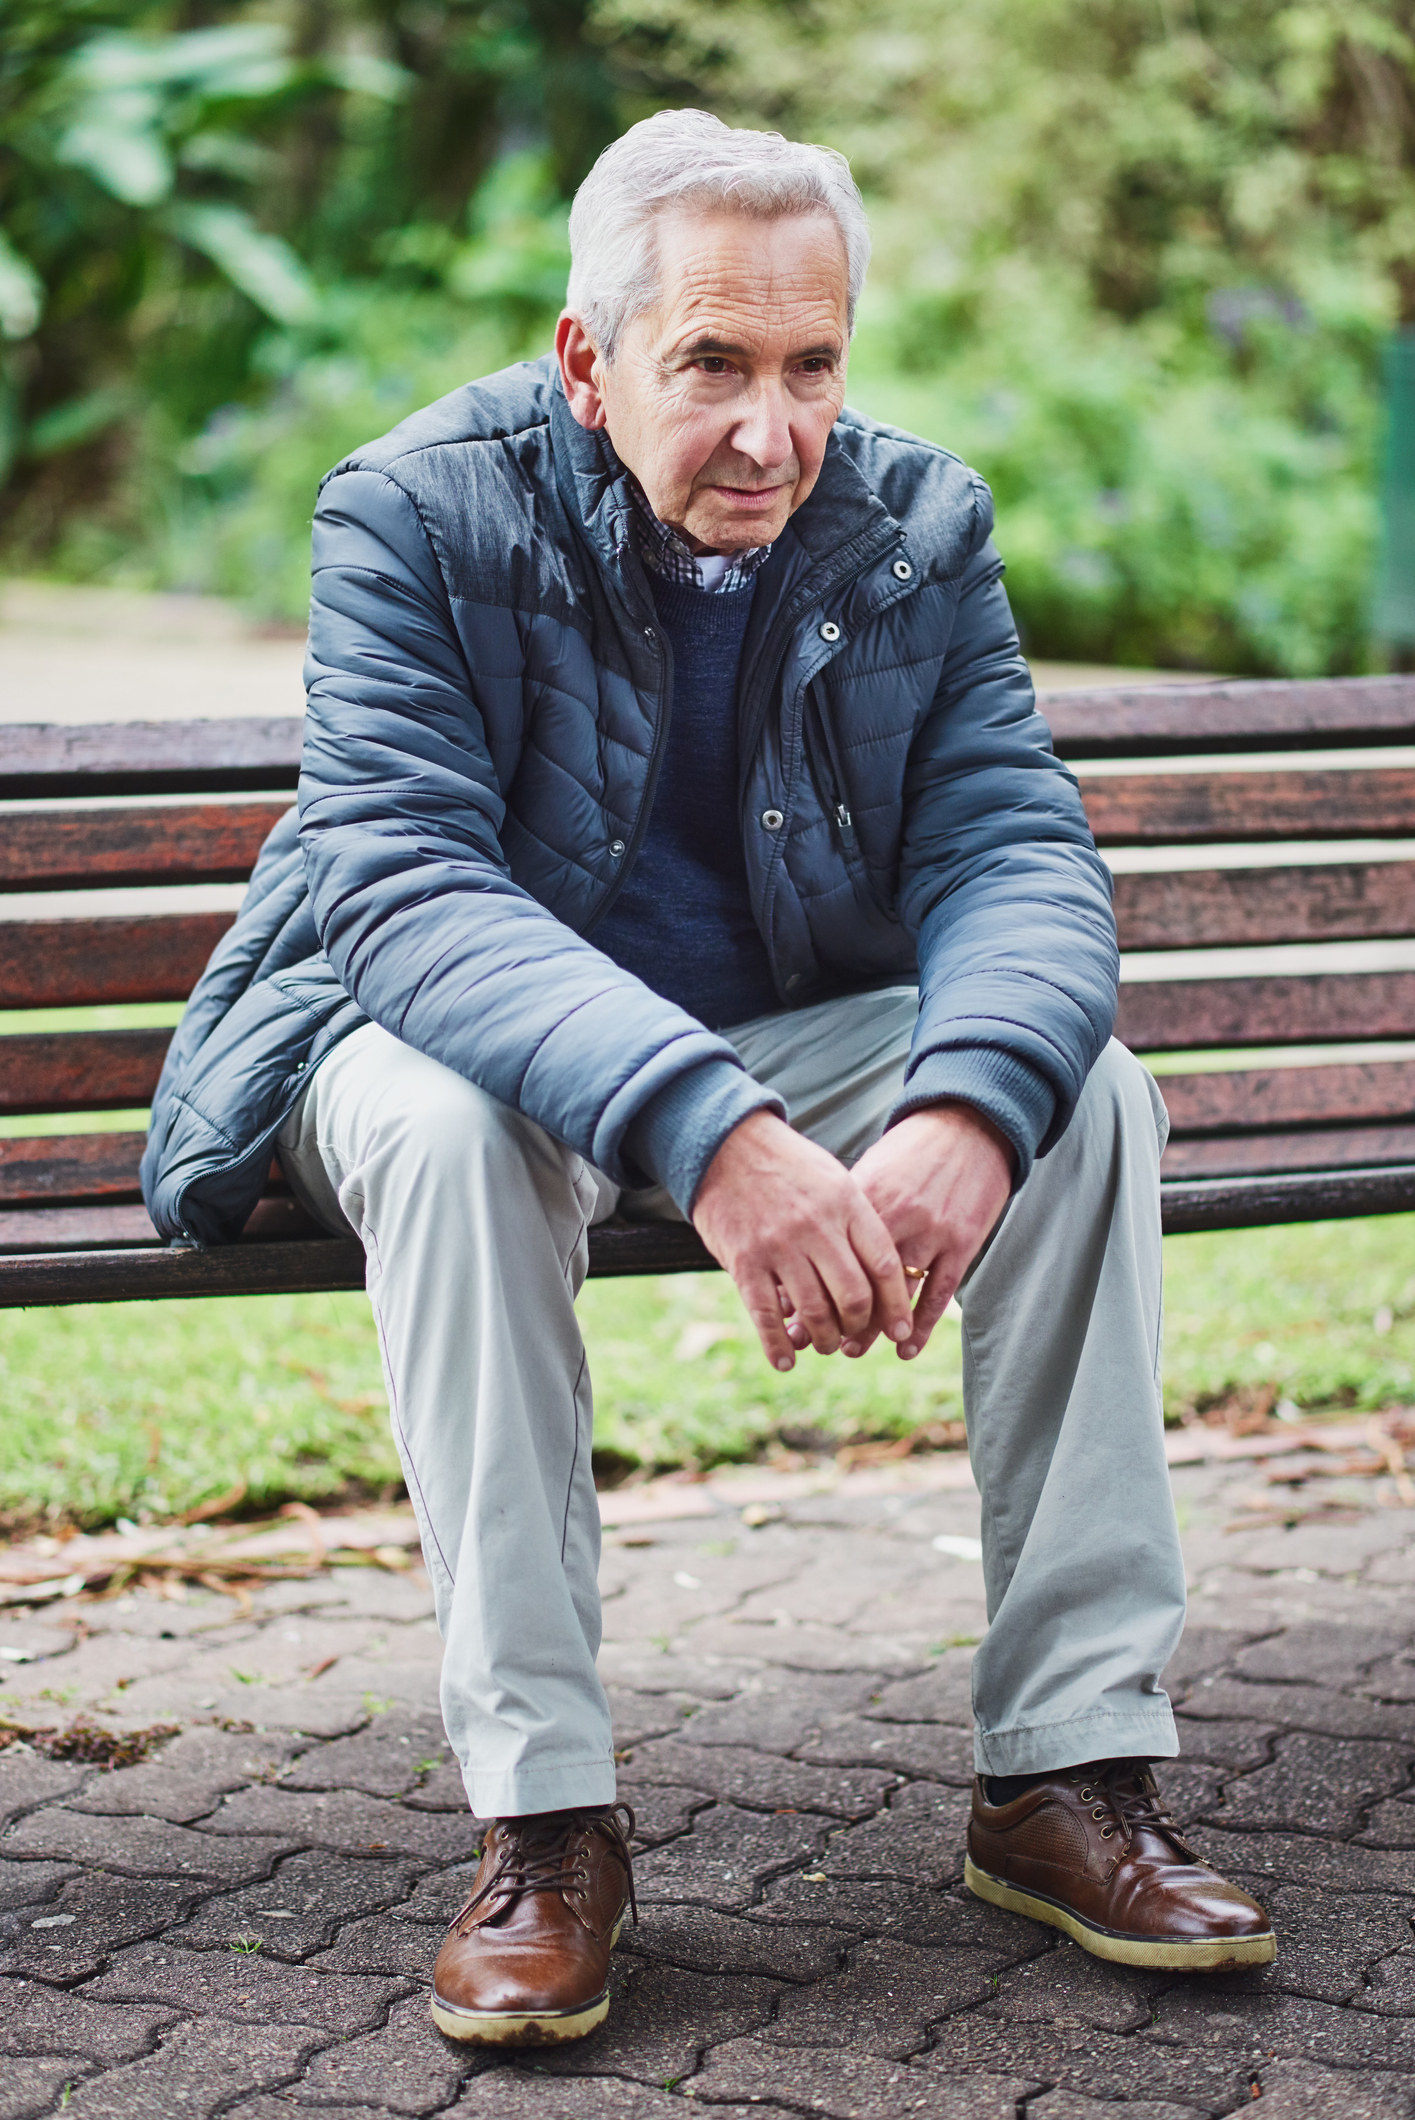 A man sits calmly on a bench